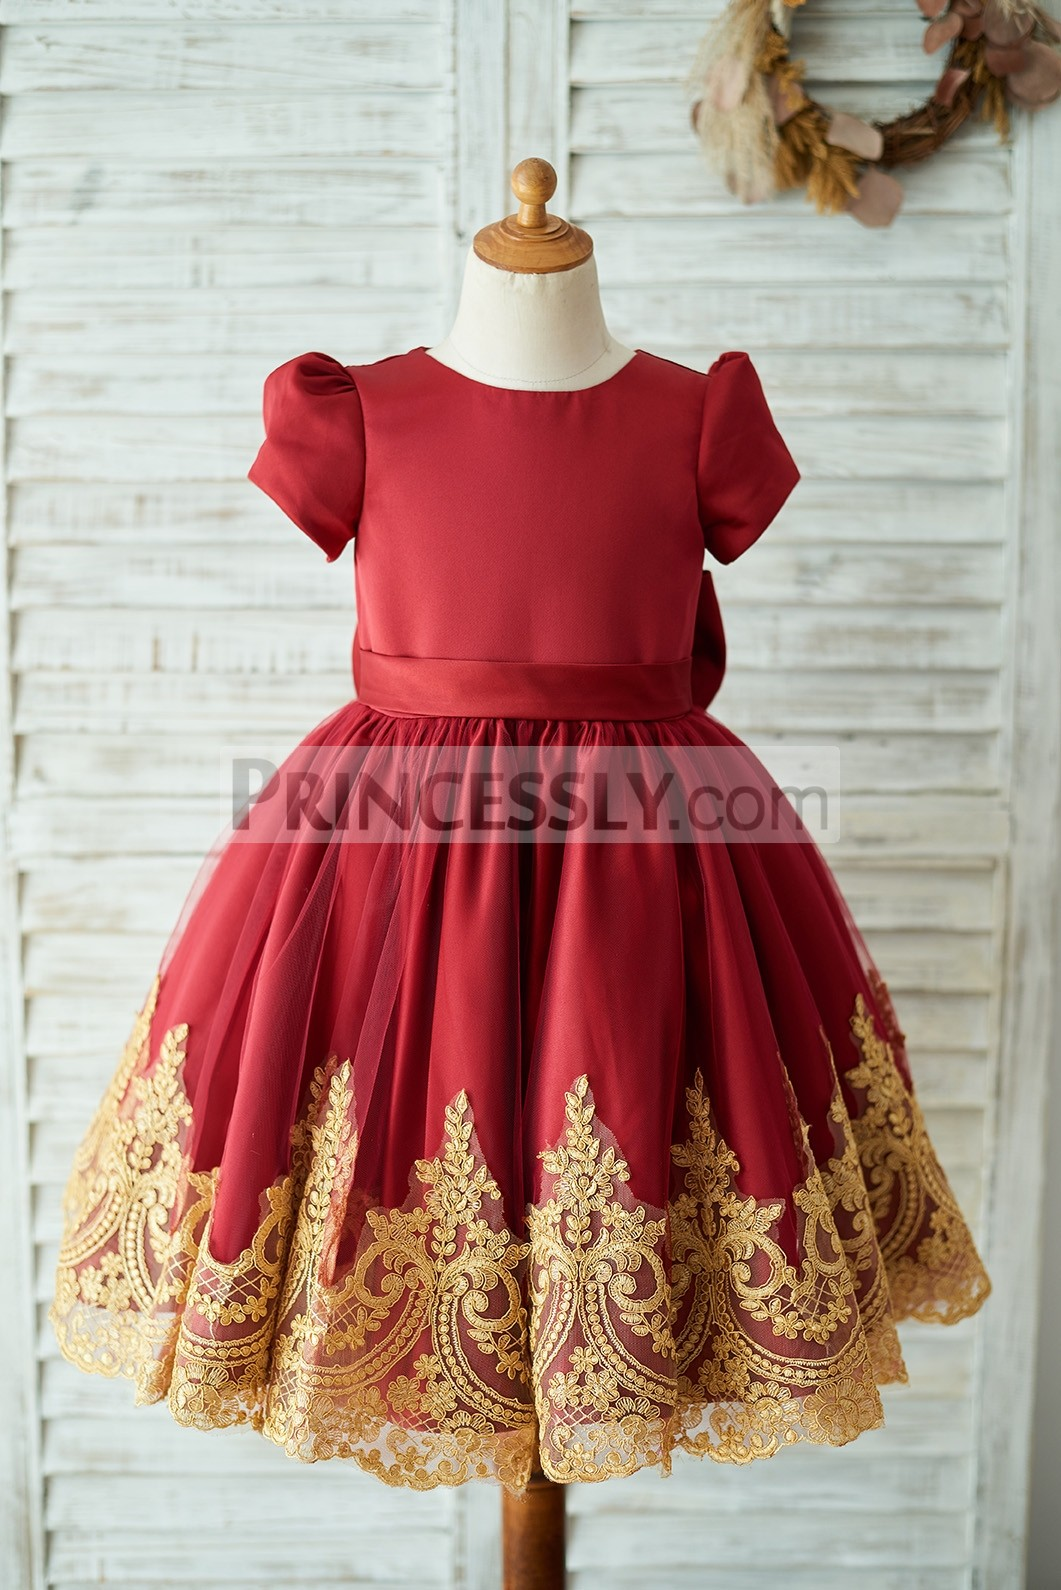 Vintage puffy short sleeves red satin tulle flower girl dress